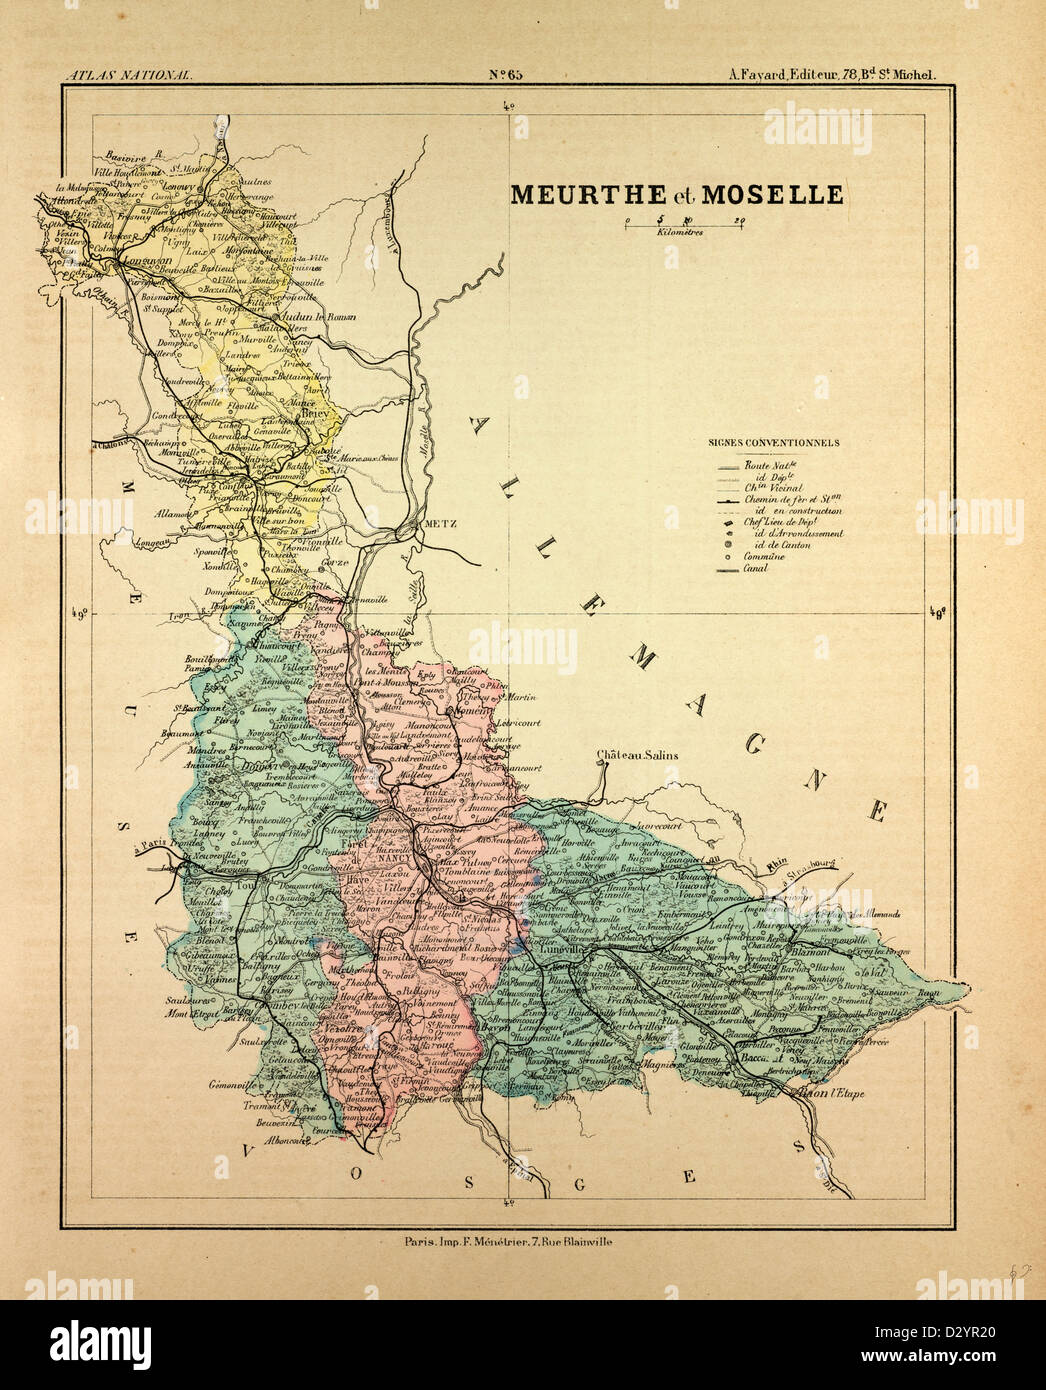 MAP OF MEURTHE ET MOSELLE FRANCE - Stock Image